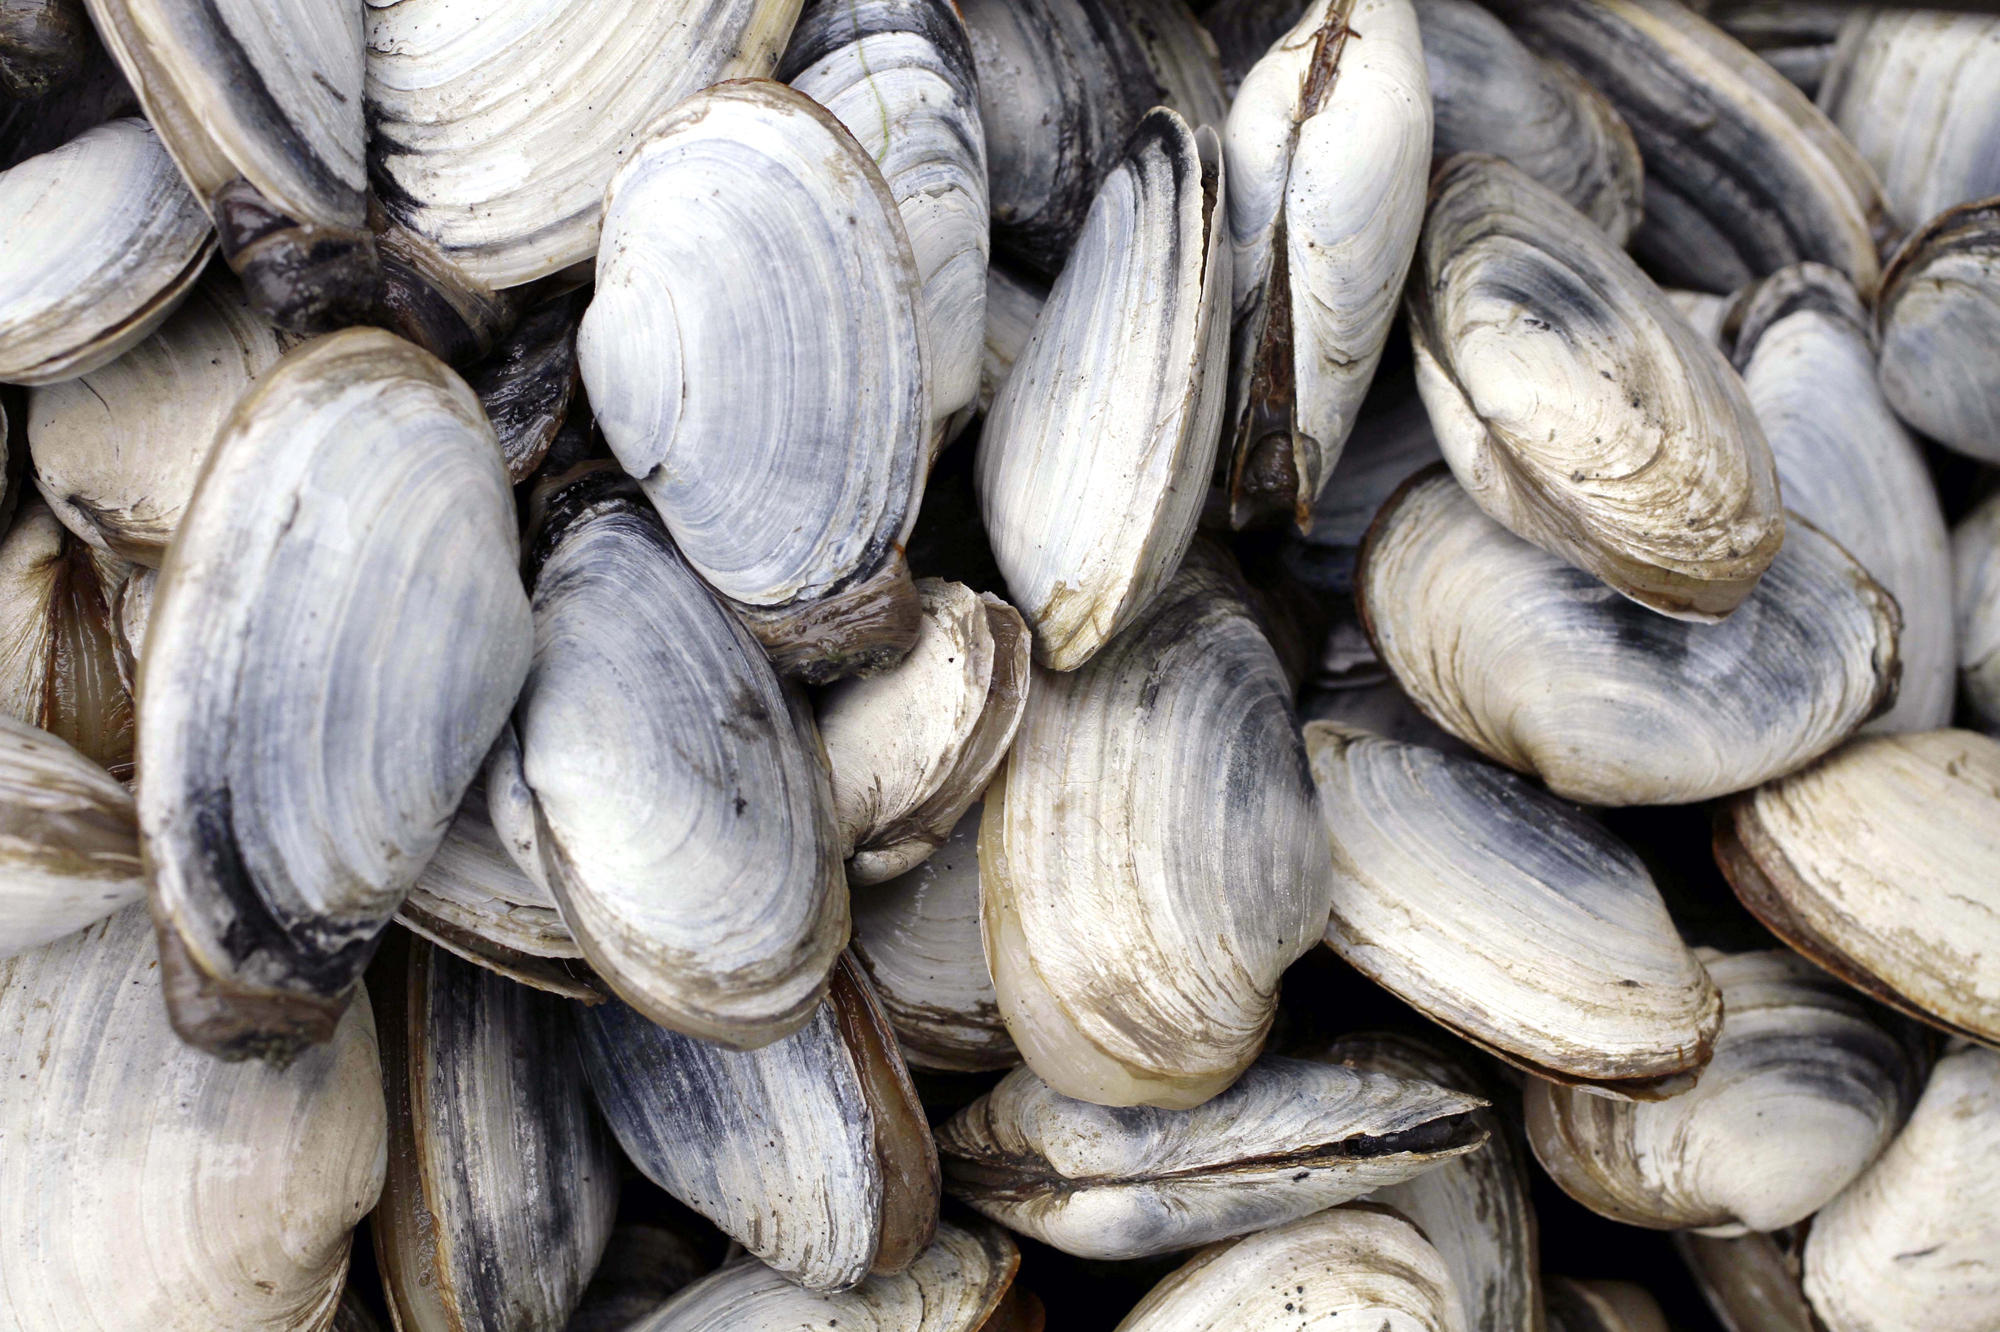 Watch Shellfish Toxin Spreading to Eastern U.S., Report Says video